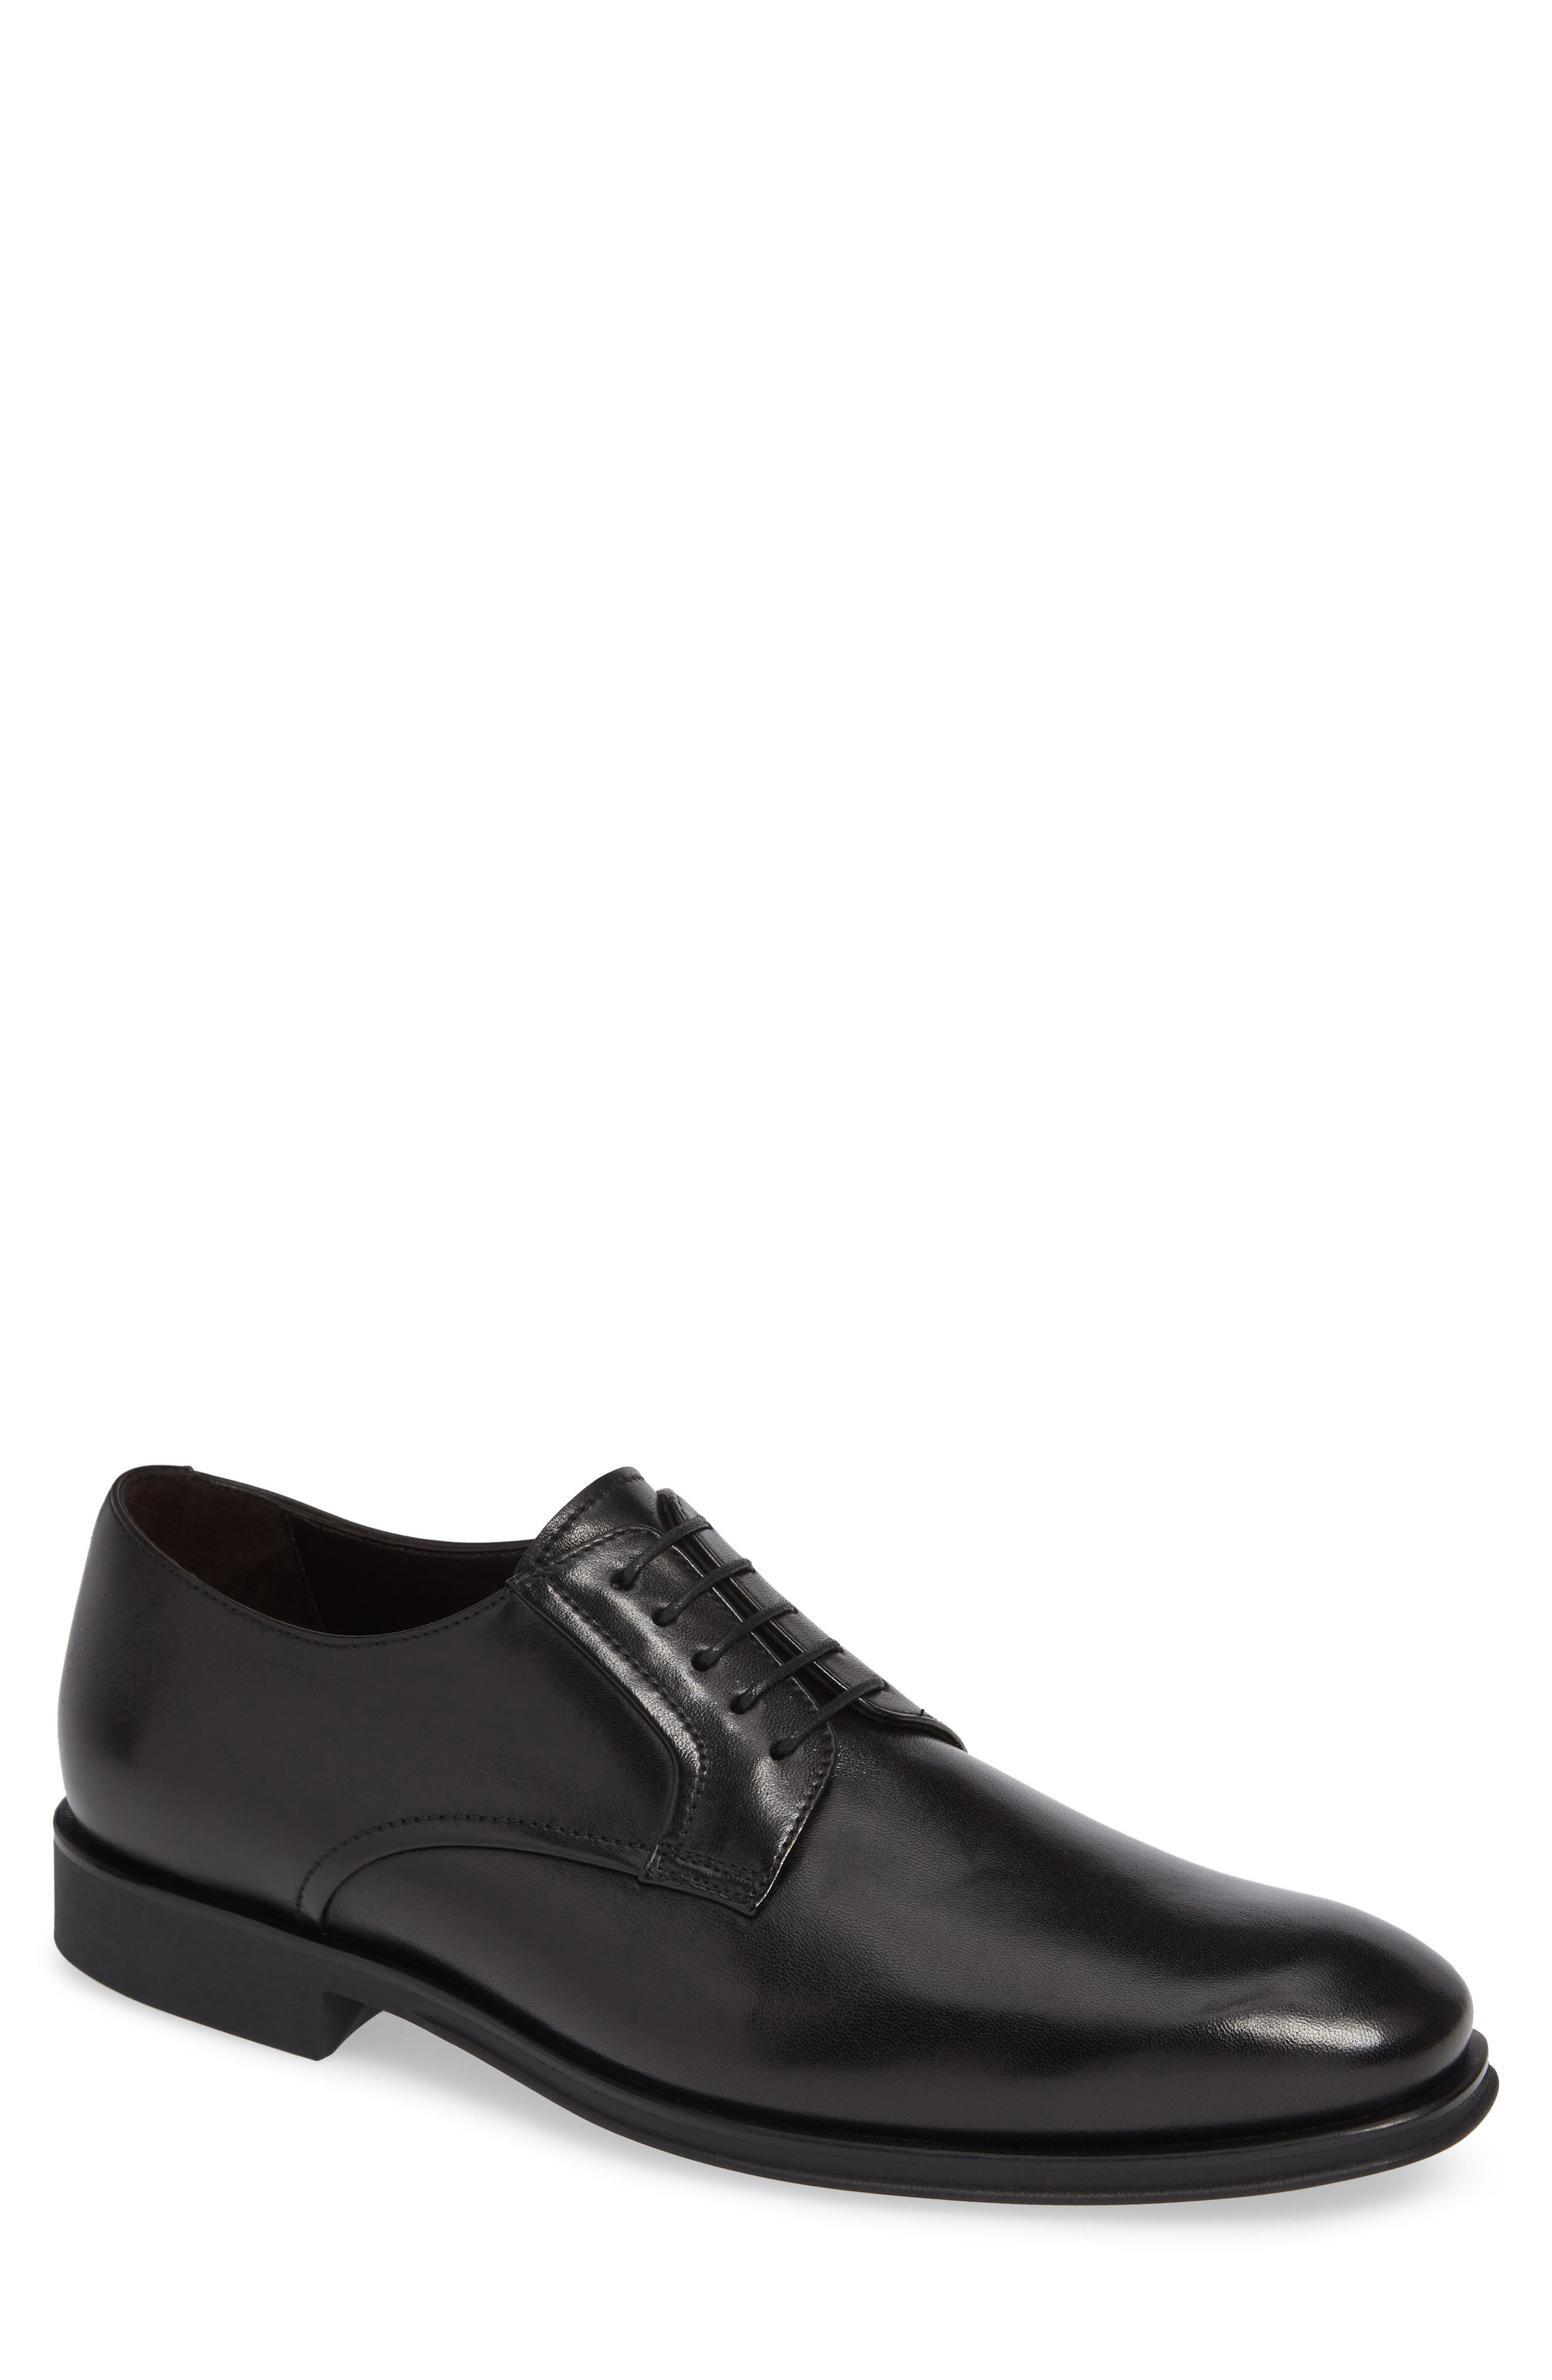 MS Zurich Oxford,                             Main thumbnail 1, color,                             BLACK LEATHER